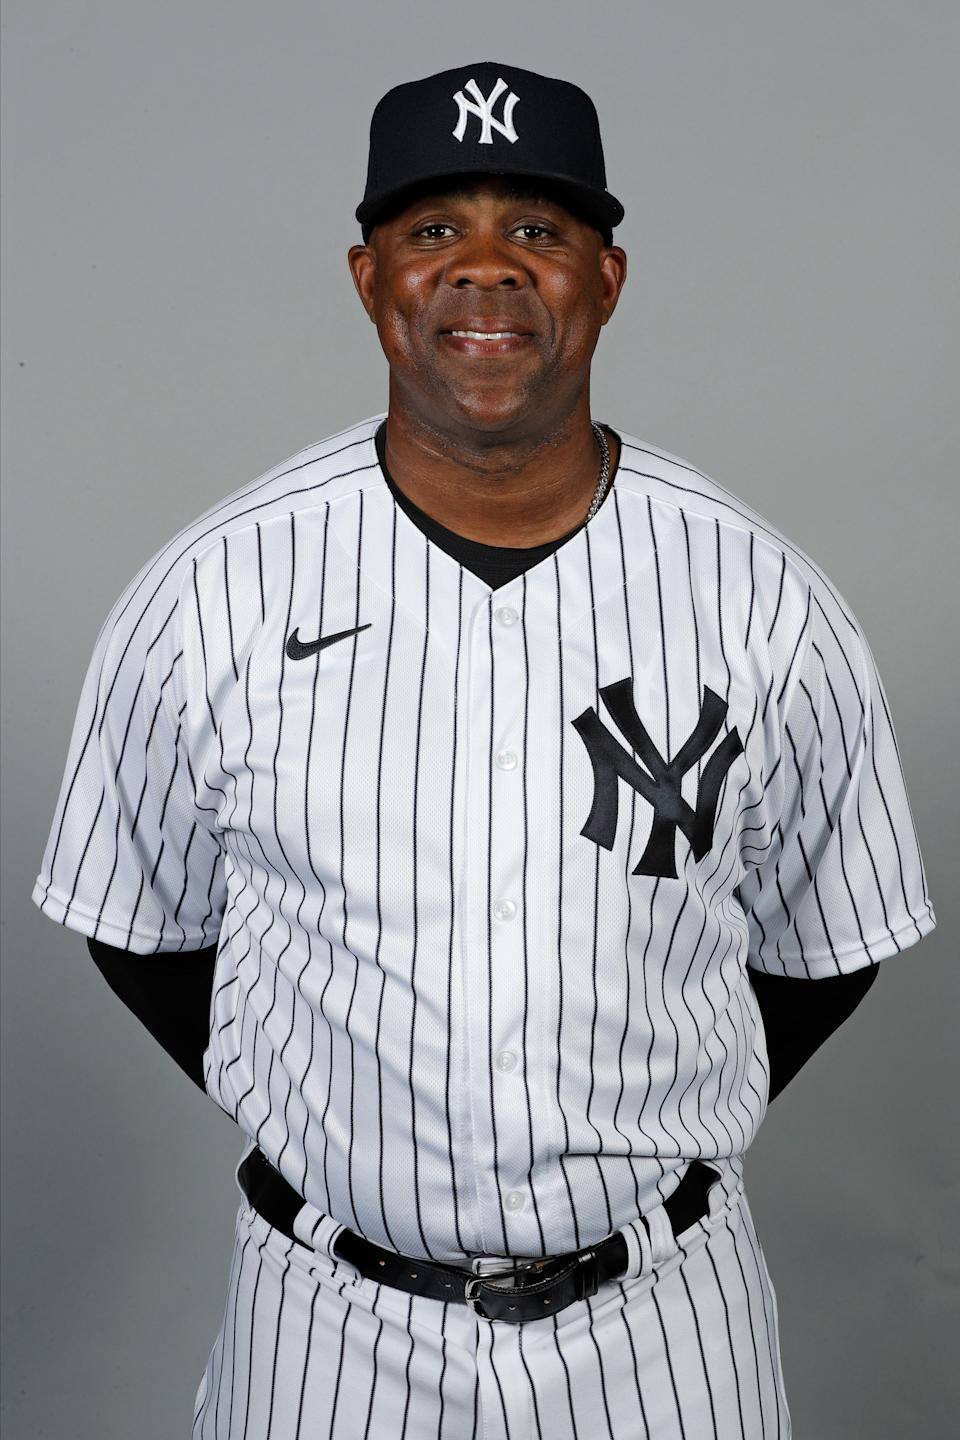 New York Yankees hitting coach Marcus Thames during media day, Thursday, Feb. 20, 2020 in Tampa, Florida.